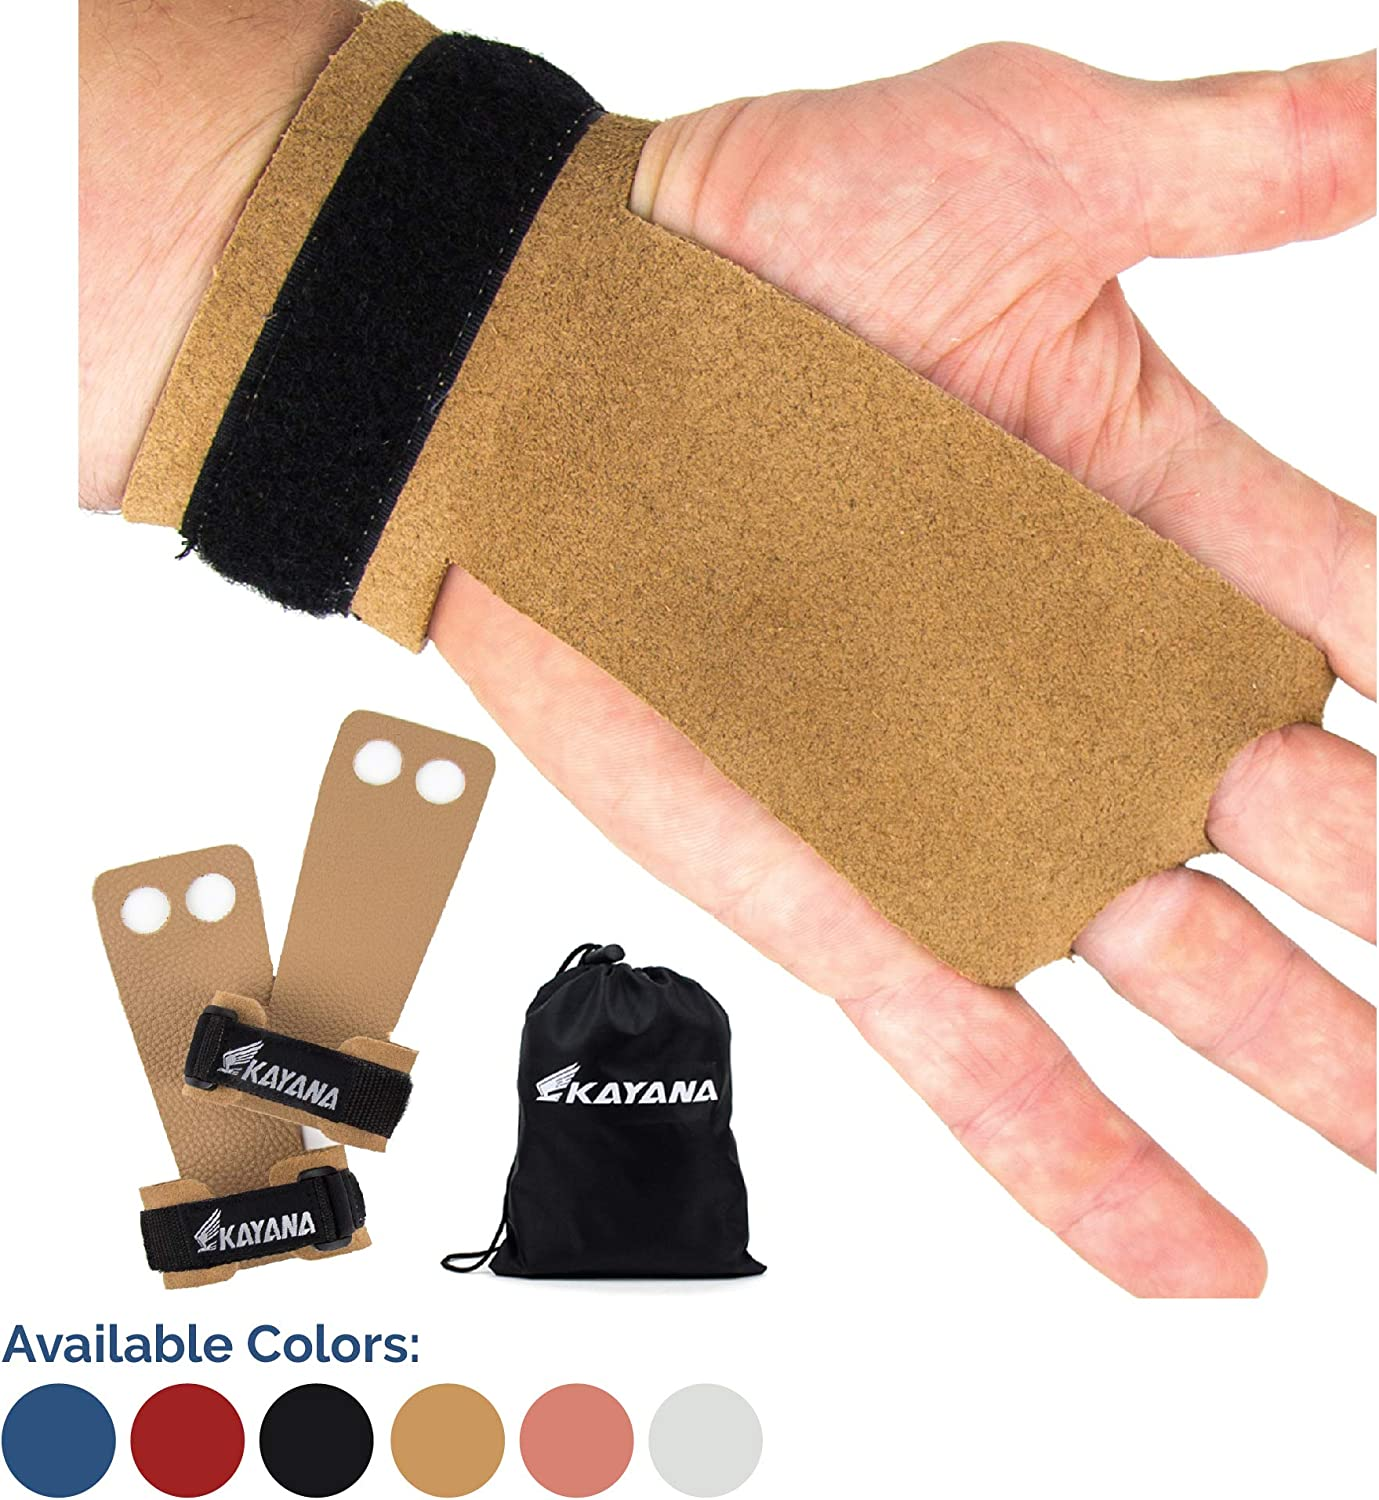 Excellent KAYANA 2 Hole Leather Gymnastics Hand an Detroit Mall Grips - Protection Palm